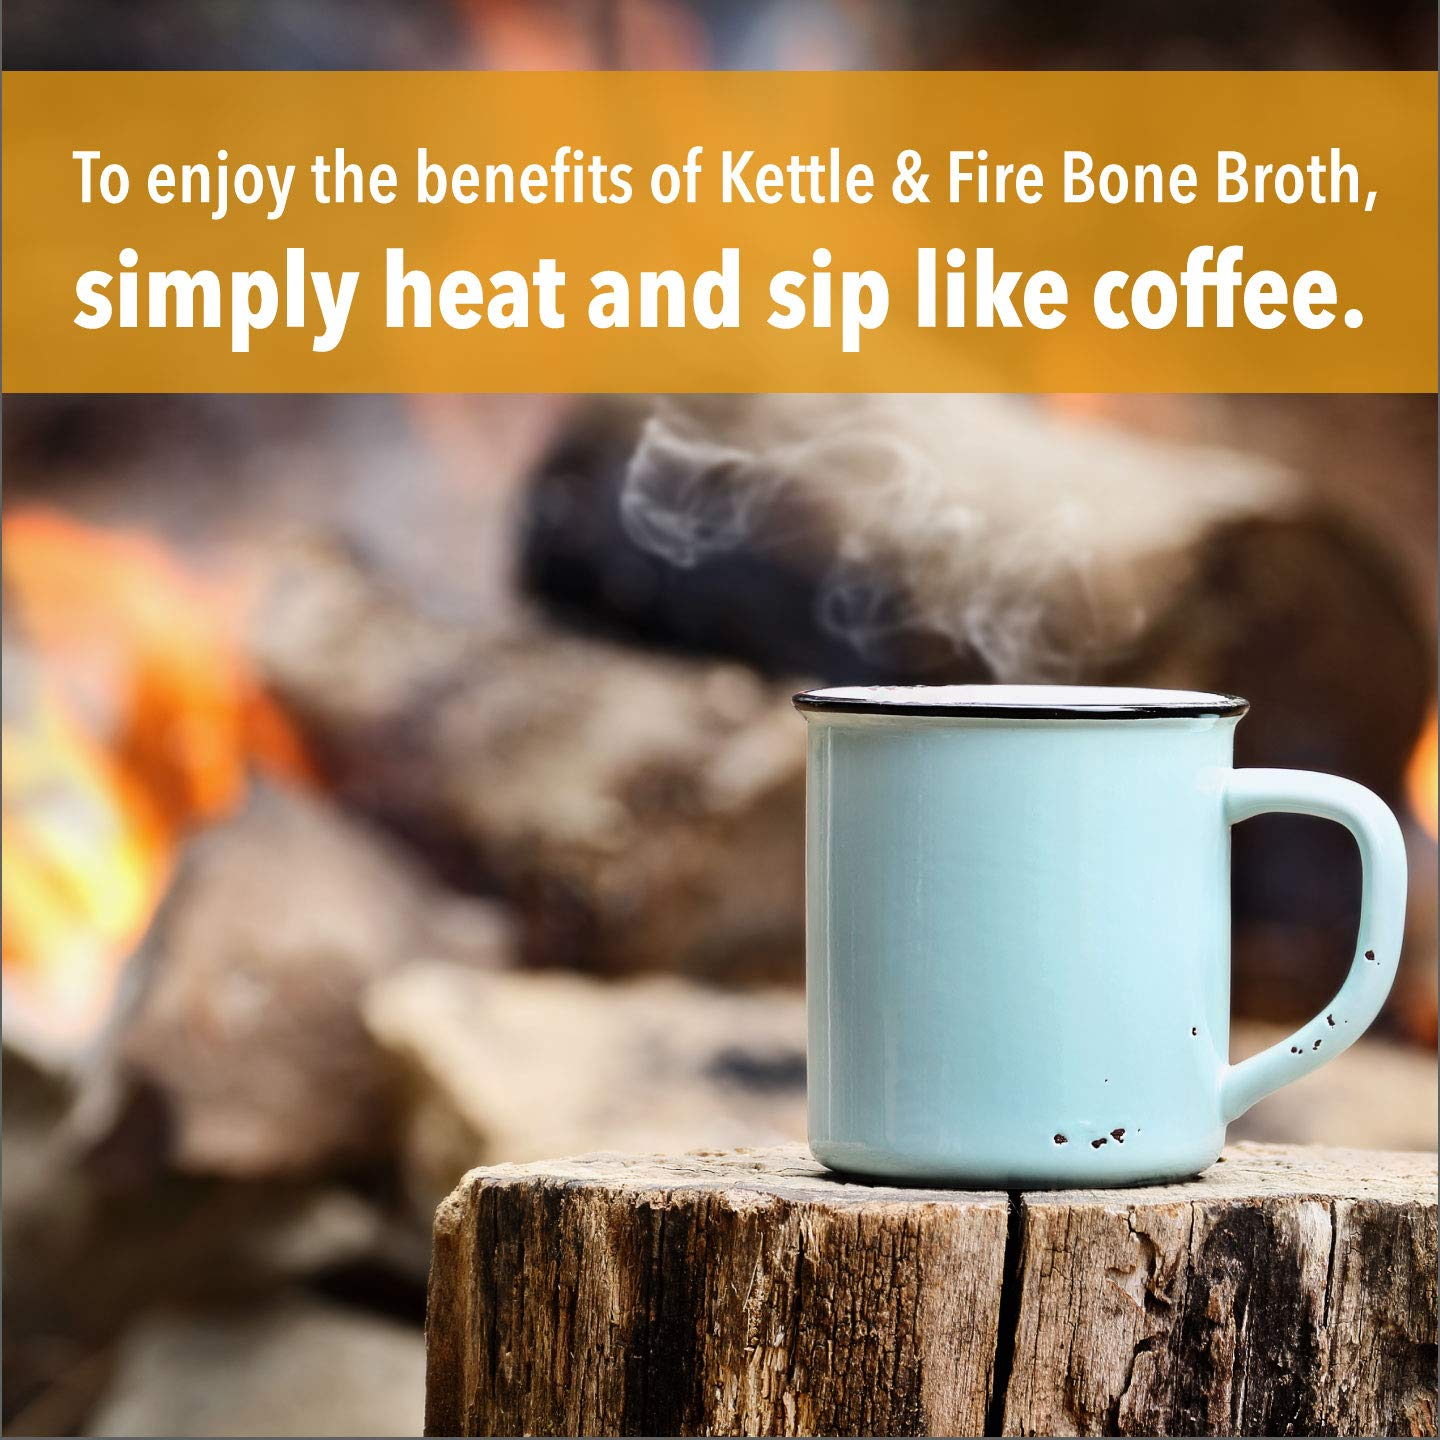 Chicken Bone Broth Soup by Kettle and Fire, Pack of 12, Keto Diet, Paleo Friendly, Whole 30 Approved, Gluten Free, with Collagen, 7g of protein, 16.9 fl oz by Kettle & Fire (Image #6)